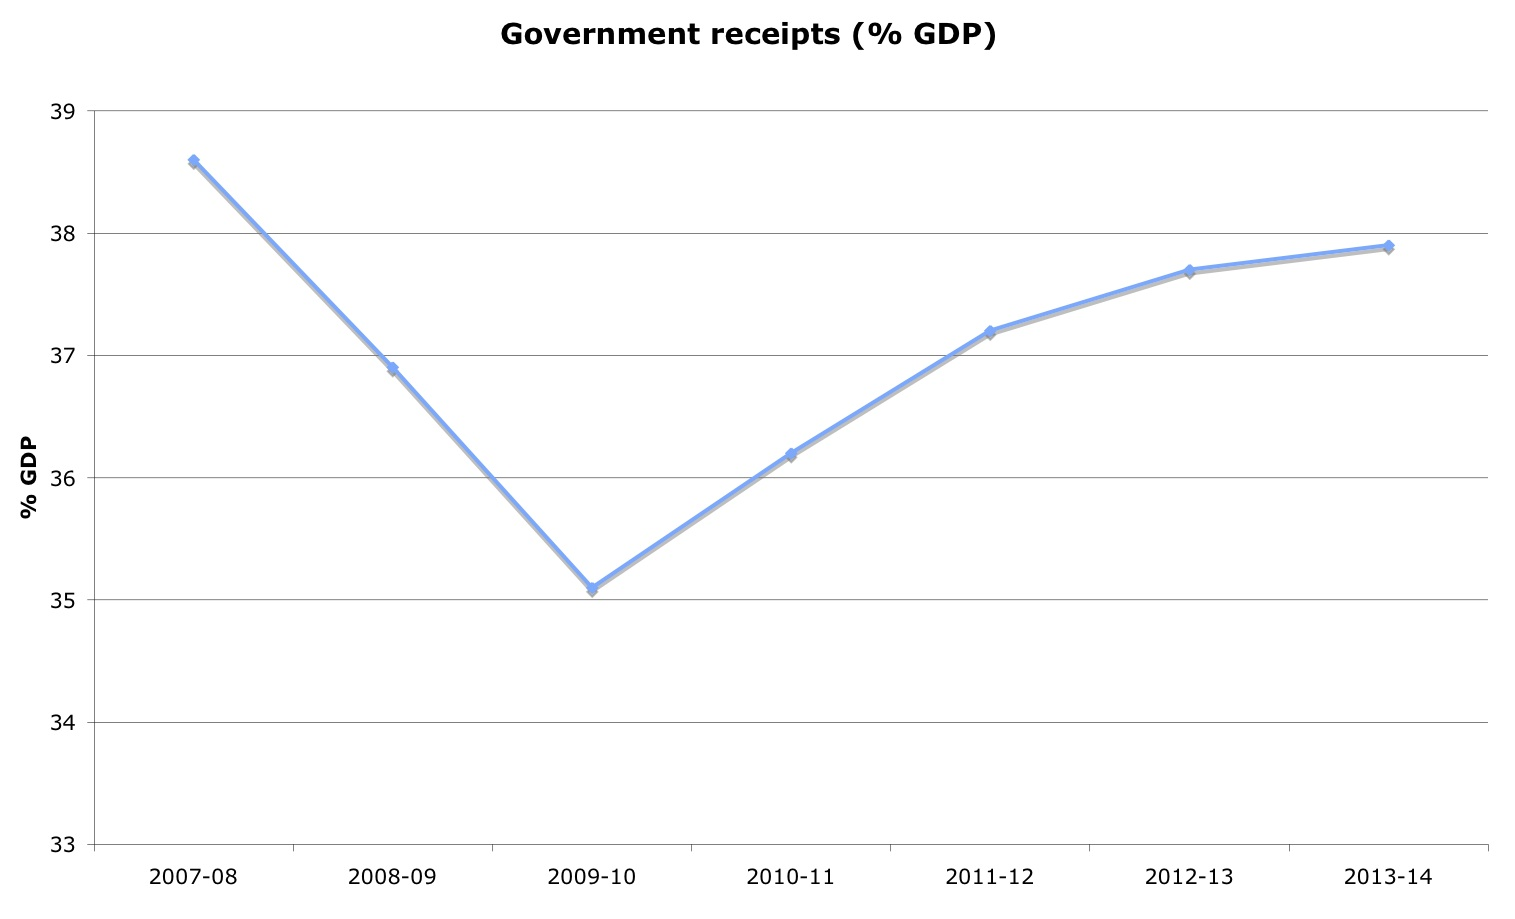 Government receipts have fallen to 35 per cent over the course of the recession